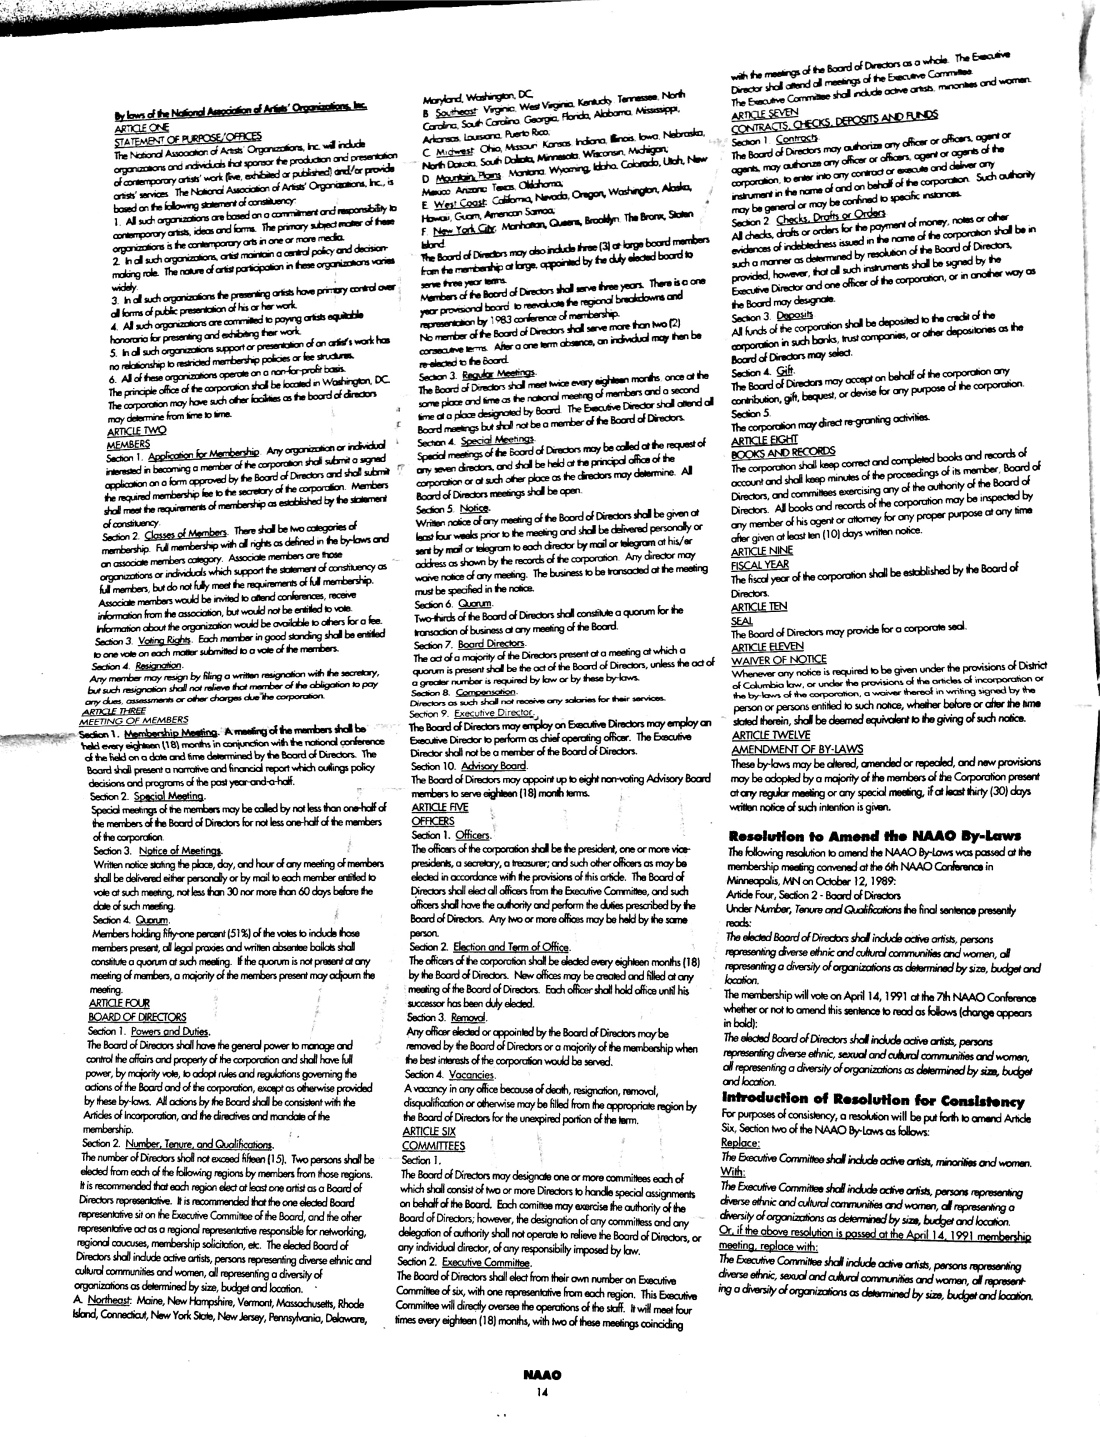 March 1991 - NAAO Bulletin Page 13.jpg